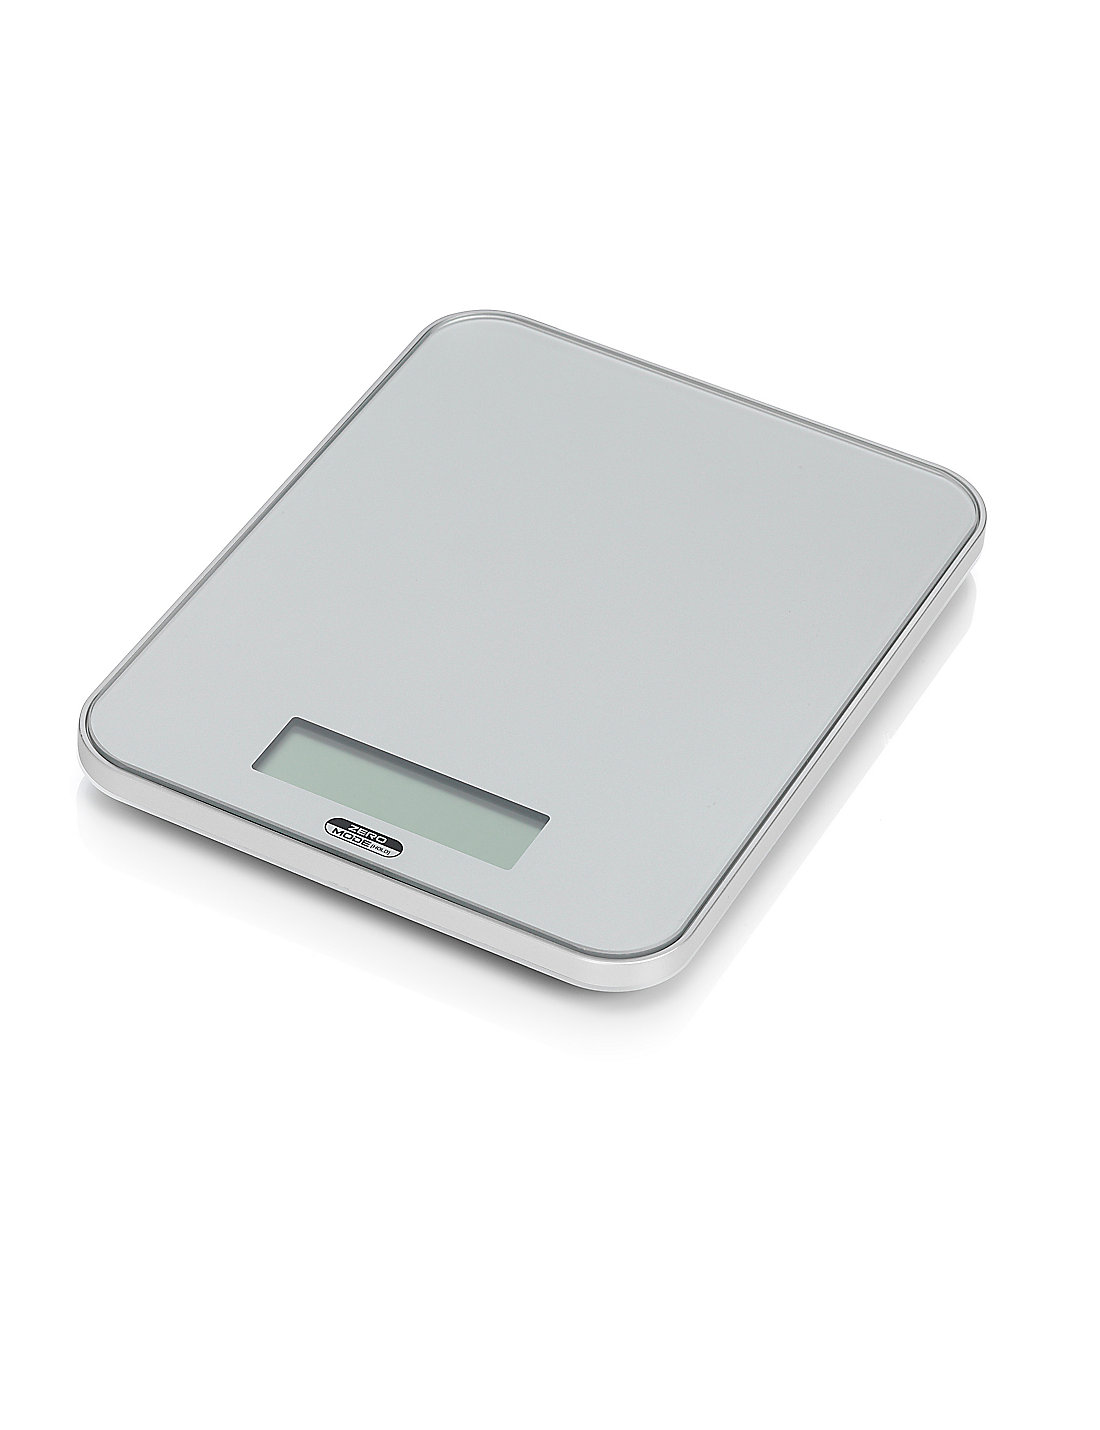 Retro Kitchen Scales Uk Kitchen Scales Digital Retro Weighing Scales Ms